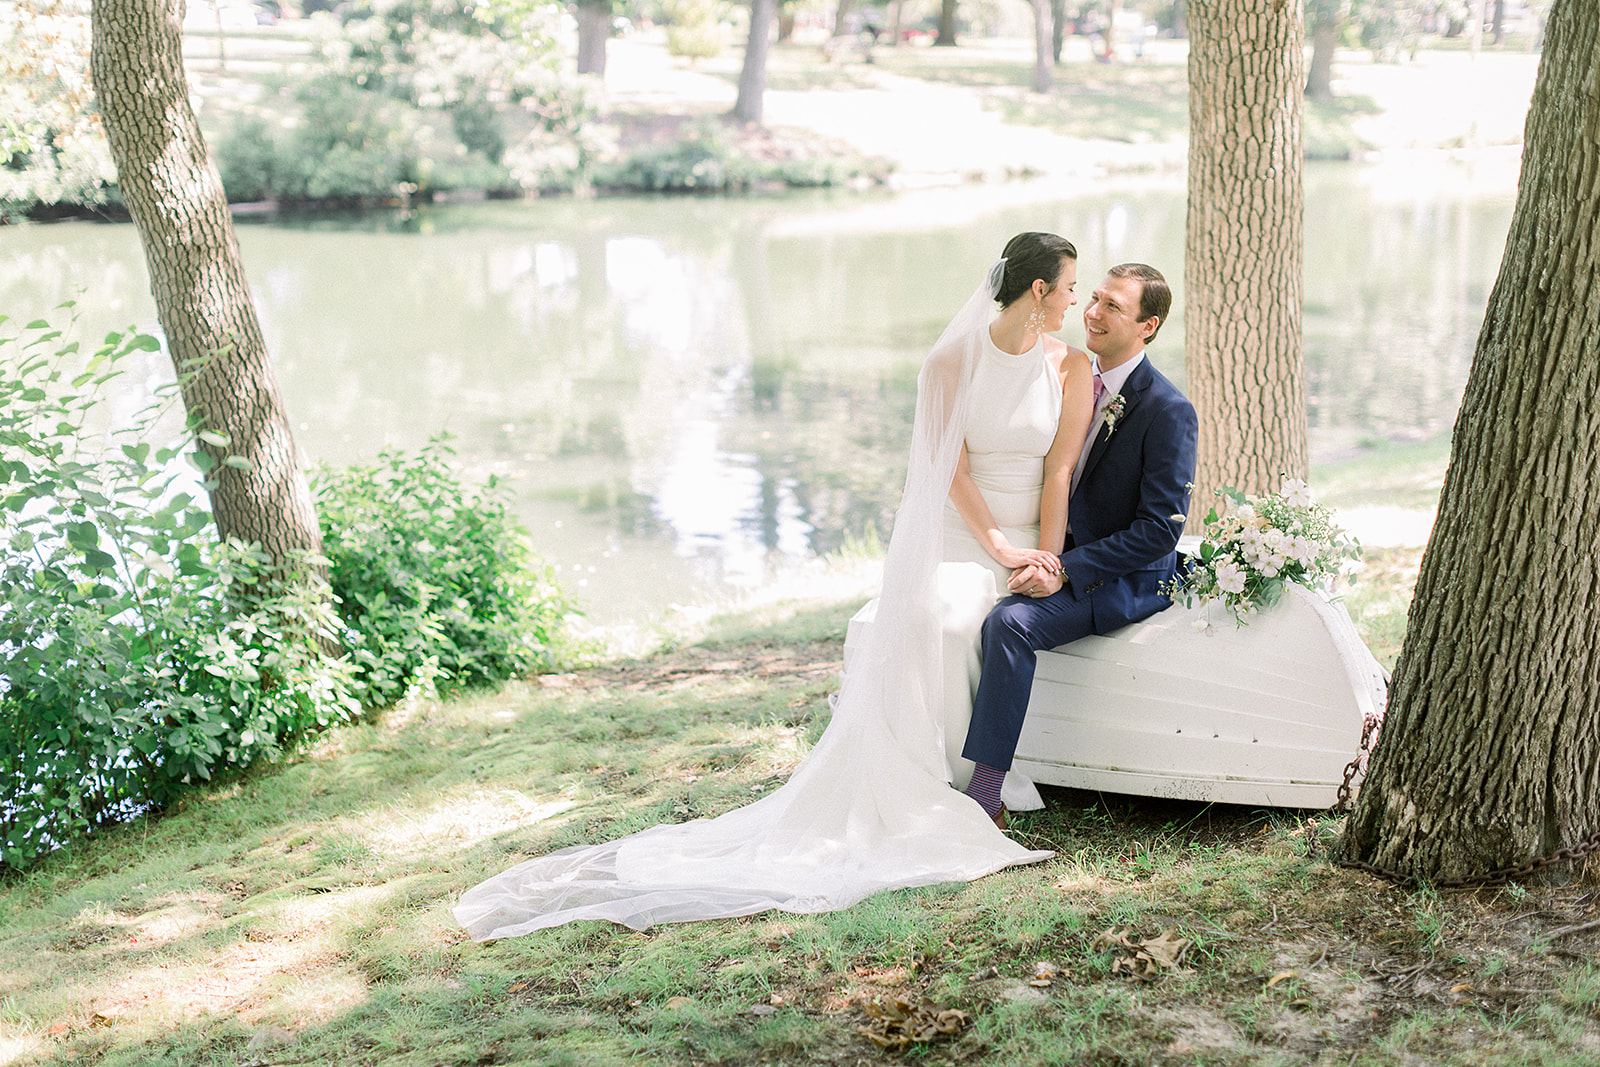 A room filled with furniture and vase of flowers next to a window - Bride